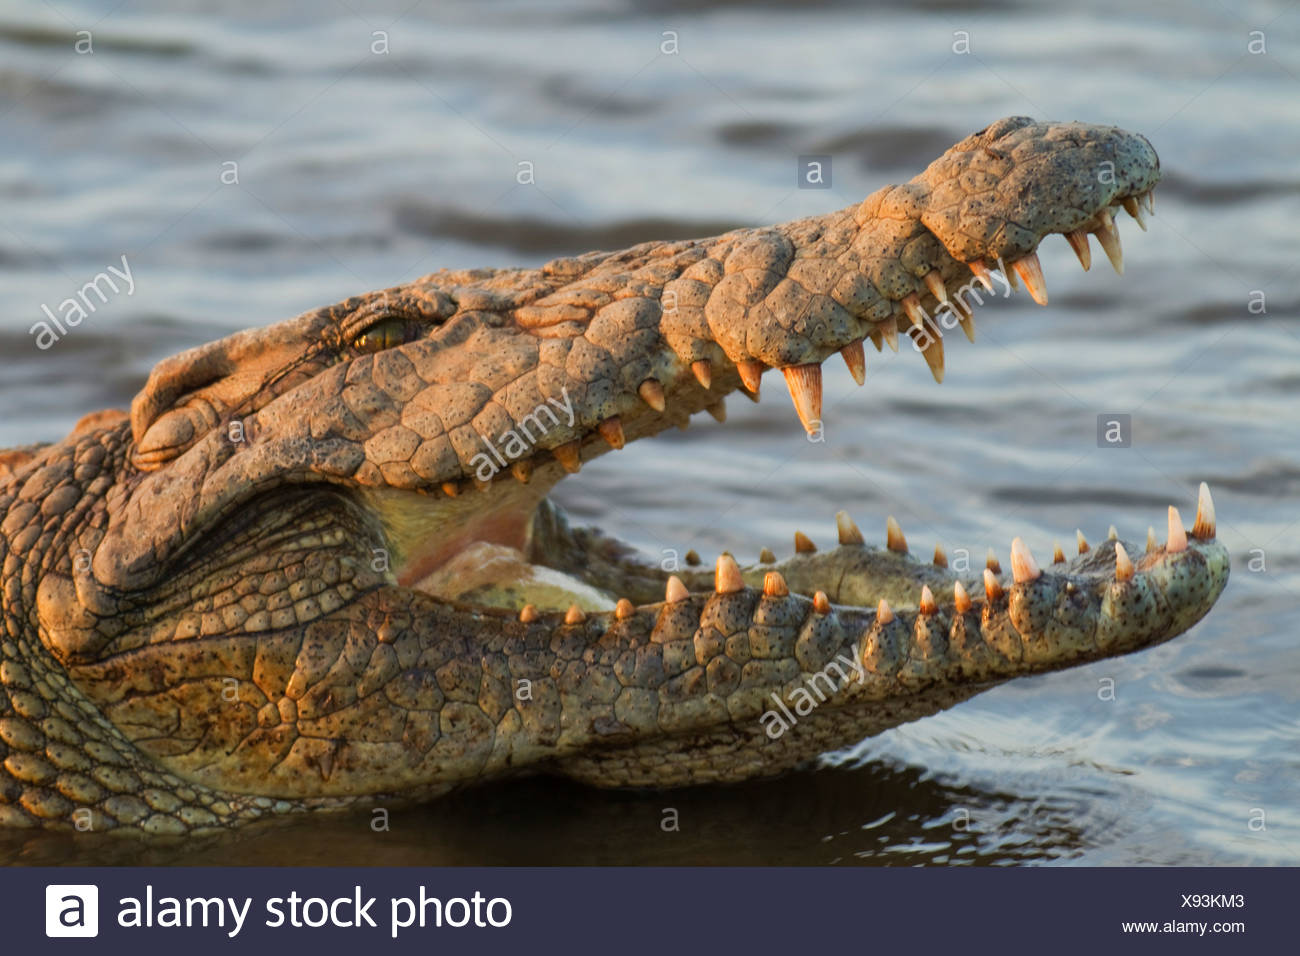 Nile Crocodile (Crocodylus niloticus), opening its mouth in order to control its body temperature, Kruger National Park - Stock Photo